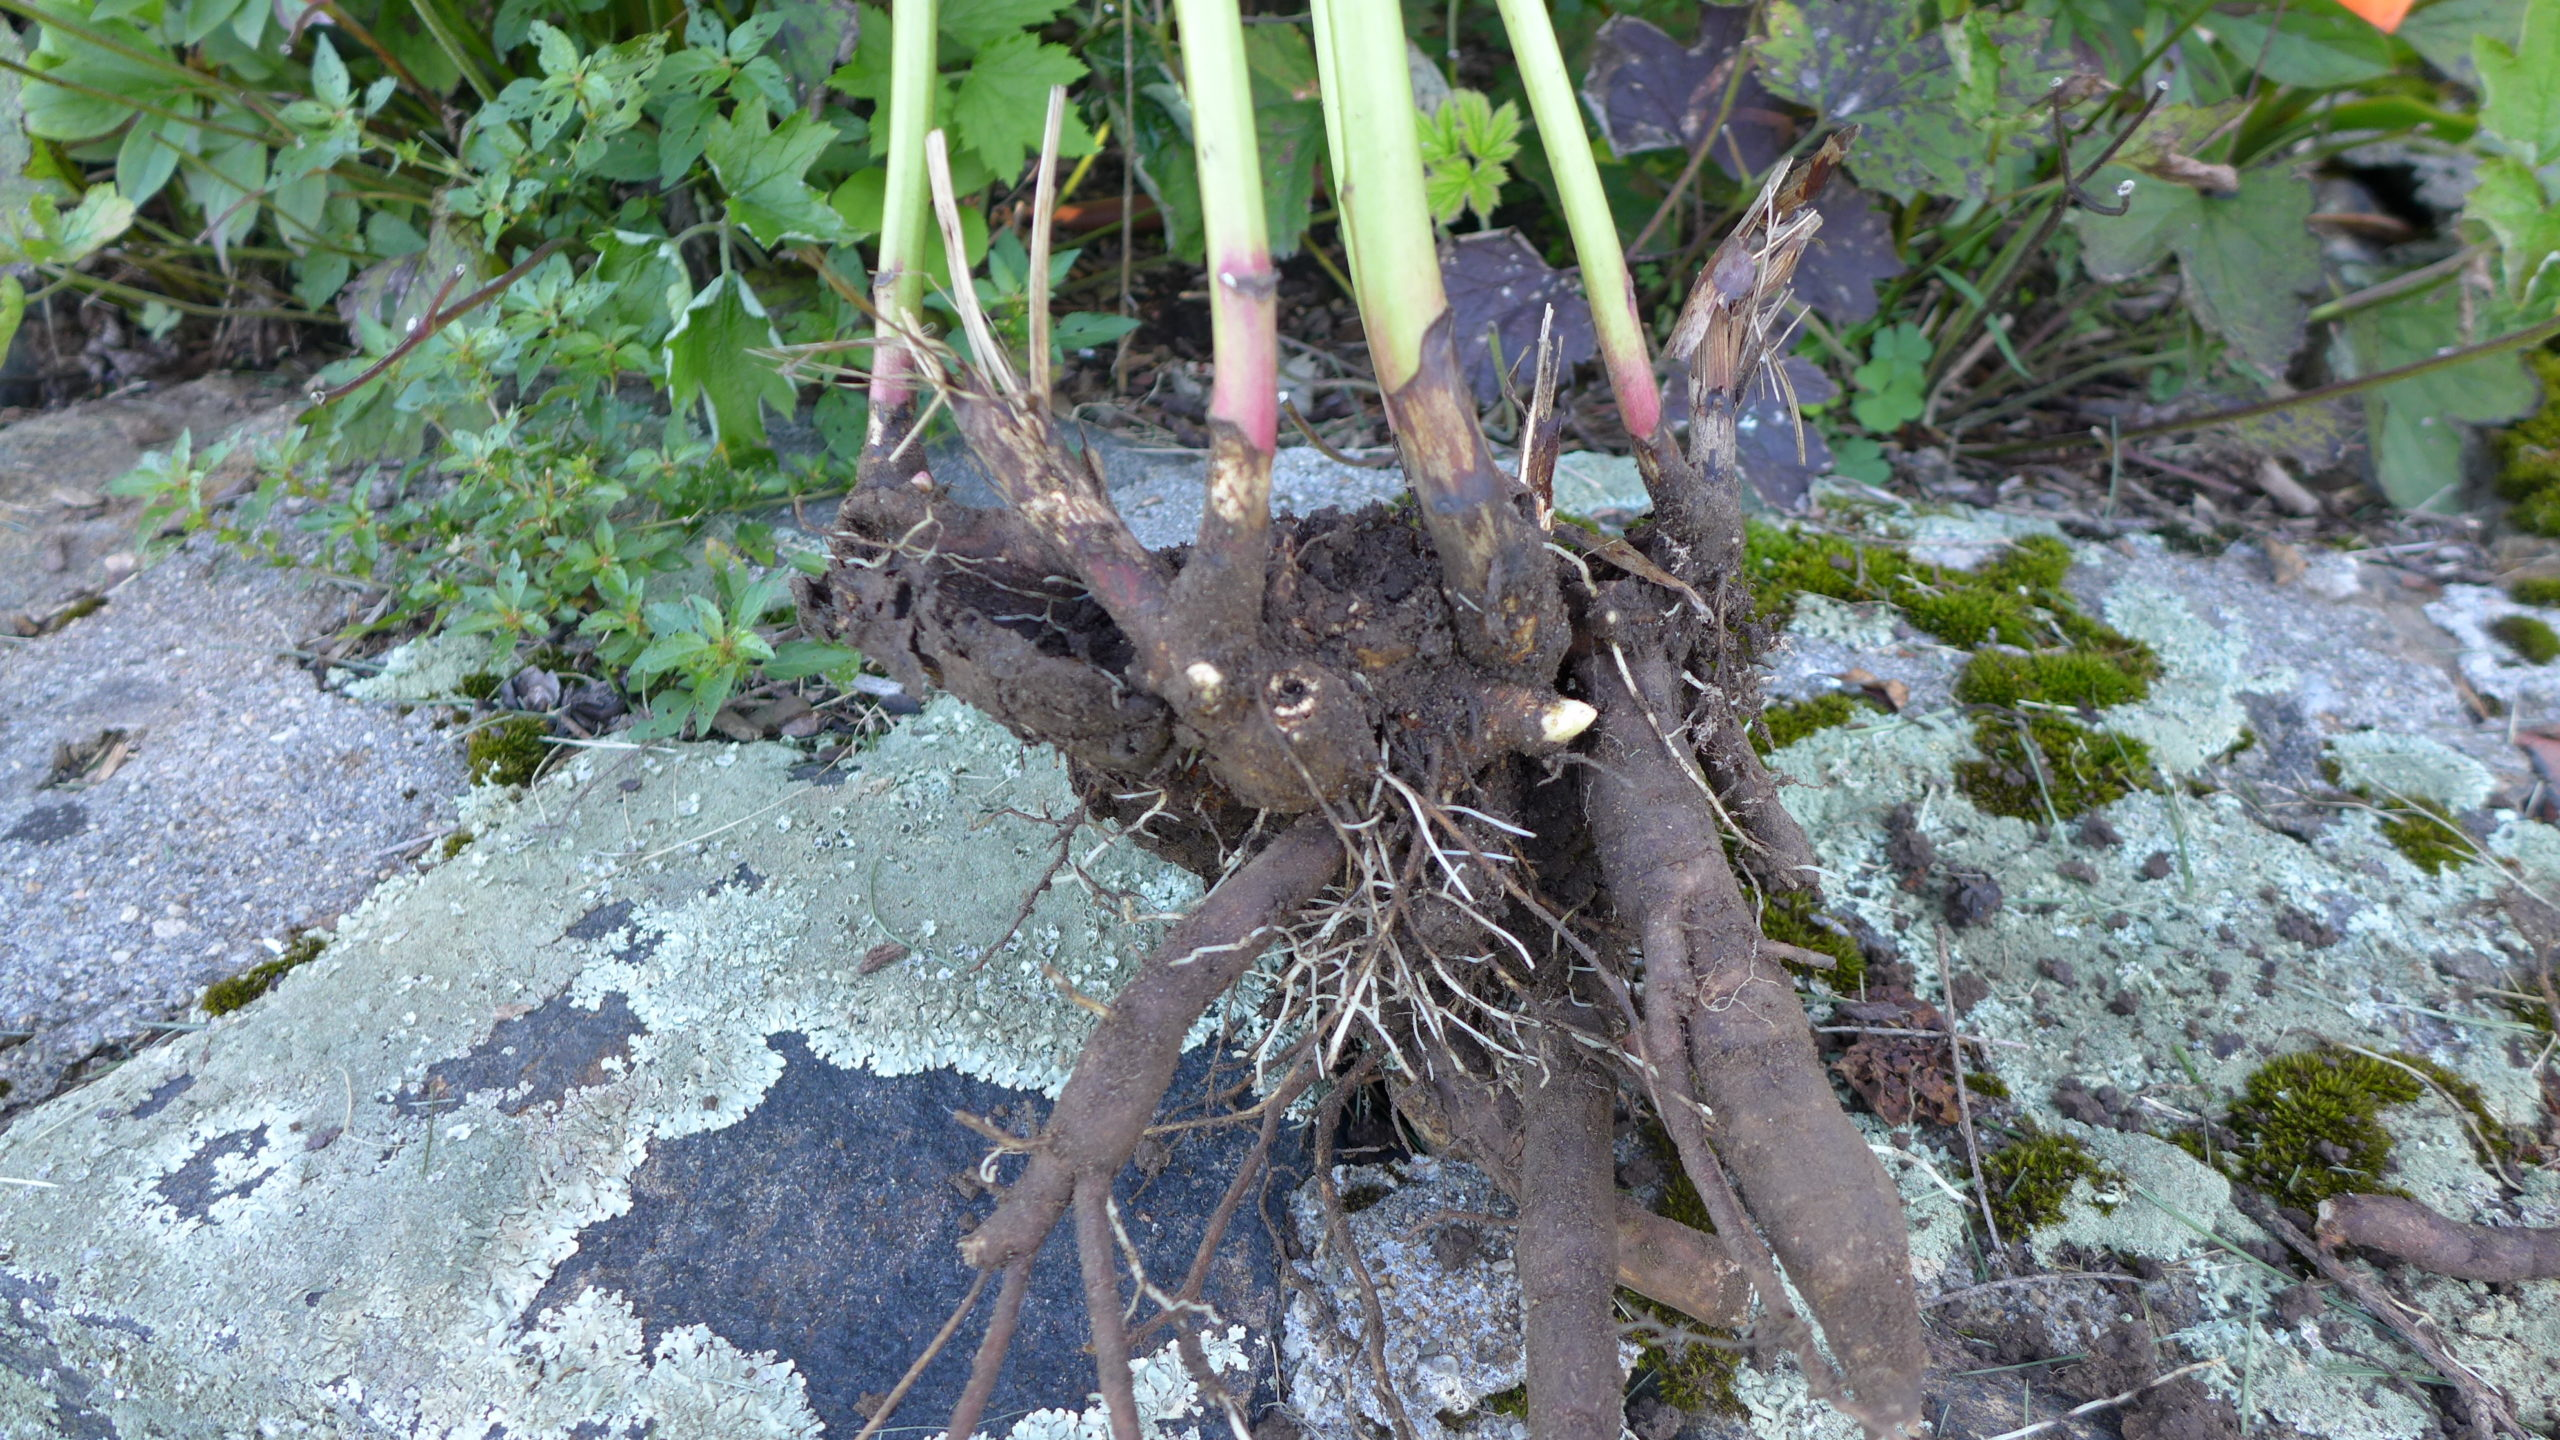 Dahlia roots/tubers should be dug, allowed to air dry, then stored in a dark cool (not freezing) spot packed in peat moss. Each section should have several eyes (light protrusions emerging from the tubers). Don't wash prior to storing. Cut the stems to 1 to 2 inches when storing.